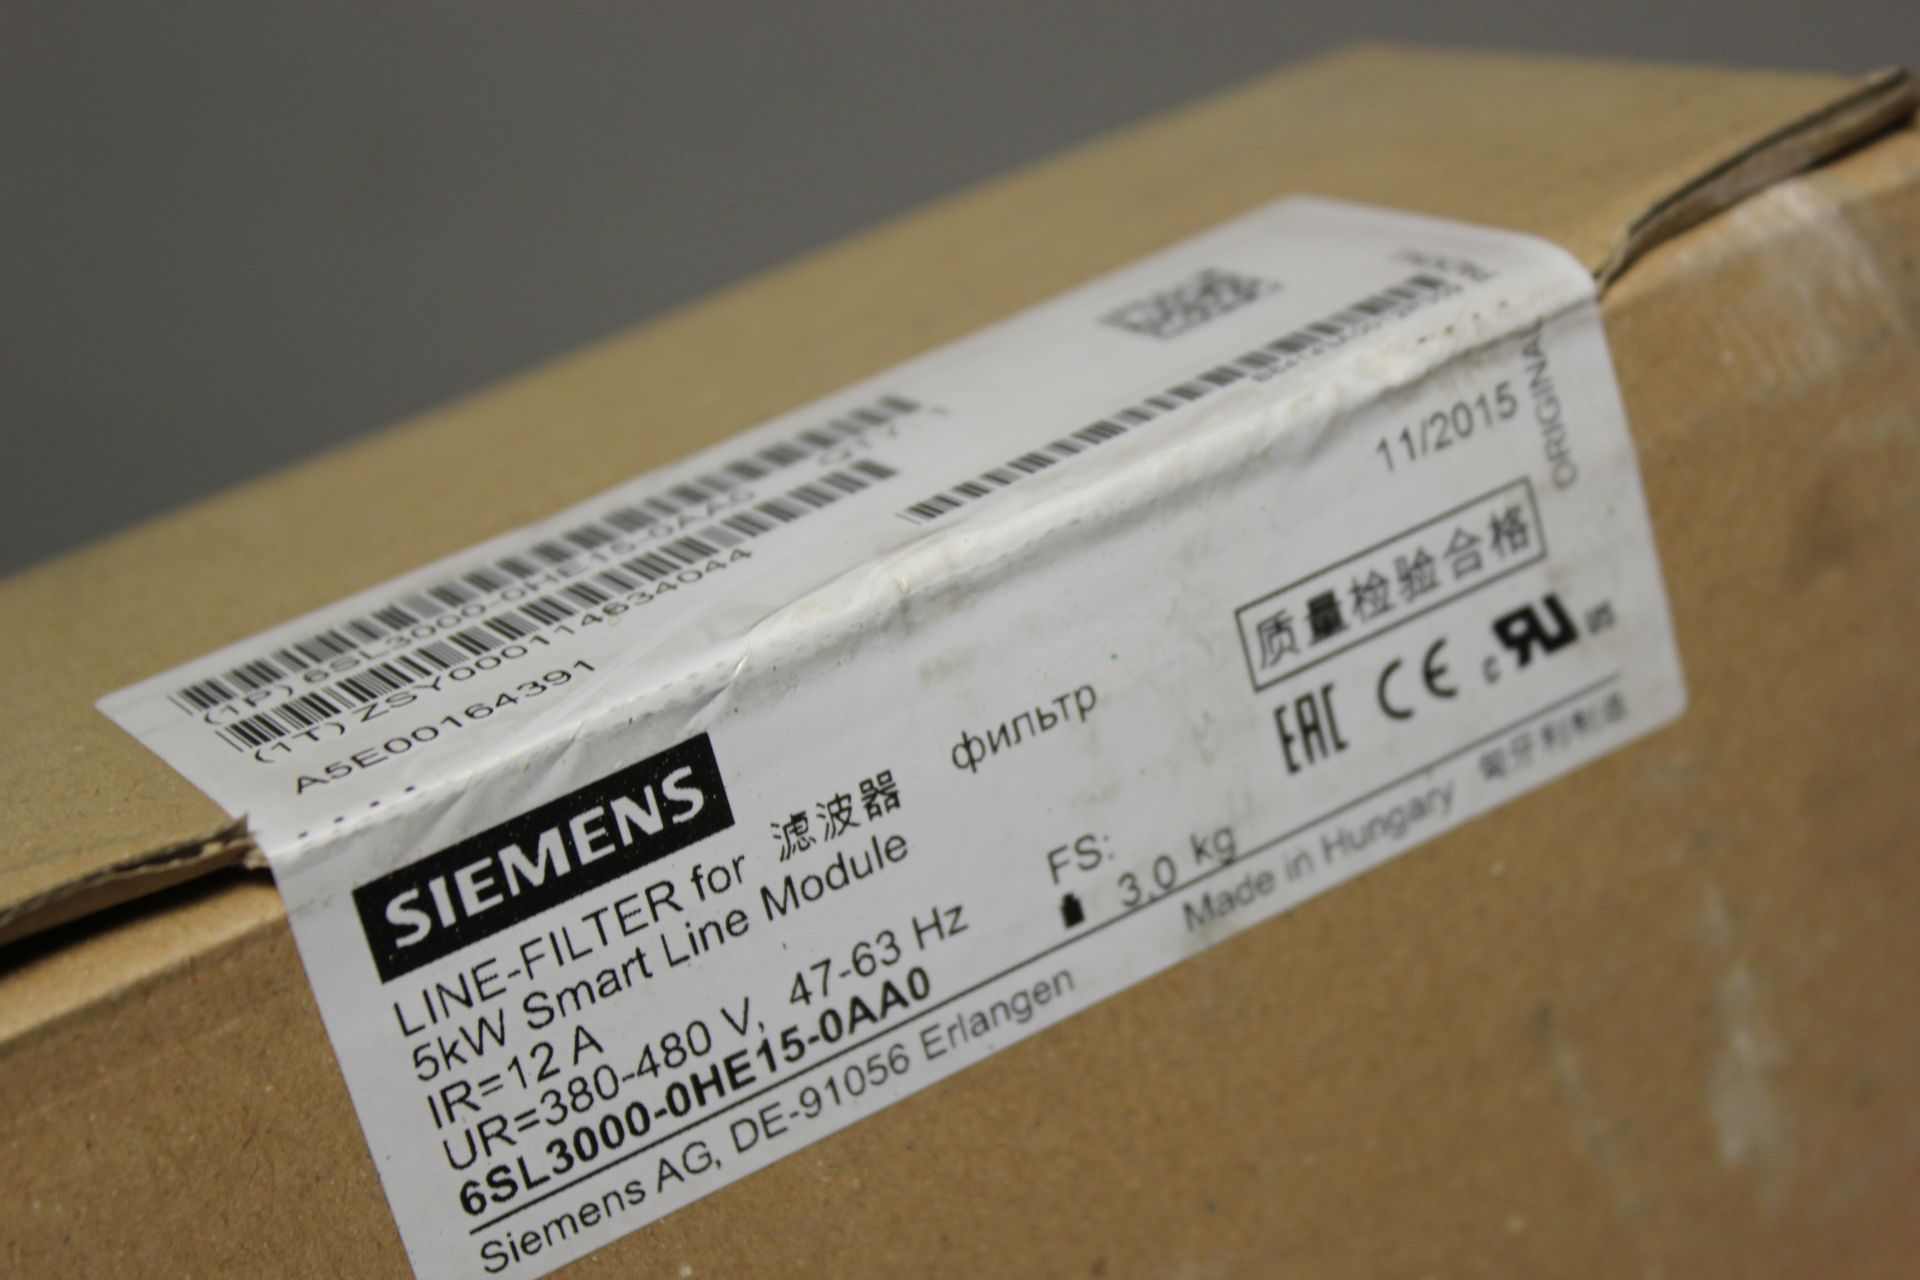 NEW SIEMENS LINE FILTER FOR SMART LINE MODULE - Image 4 of 4